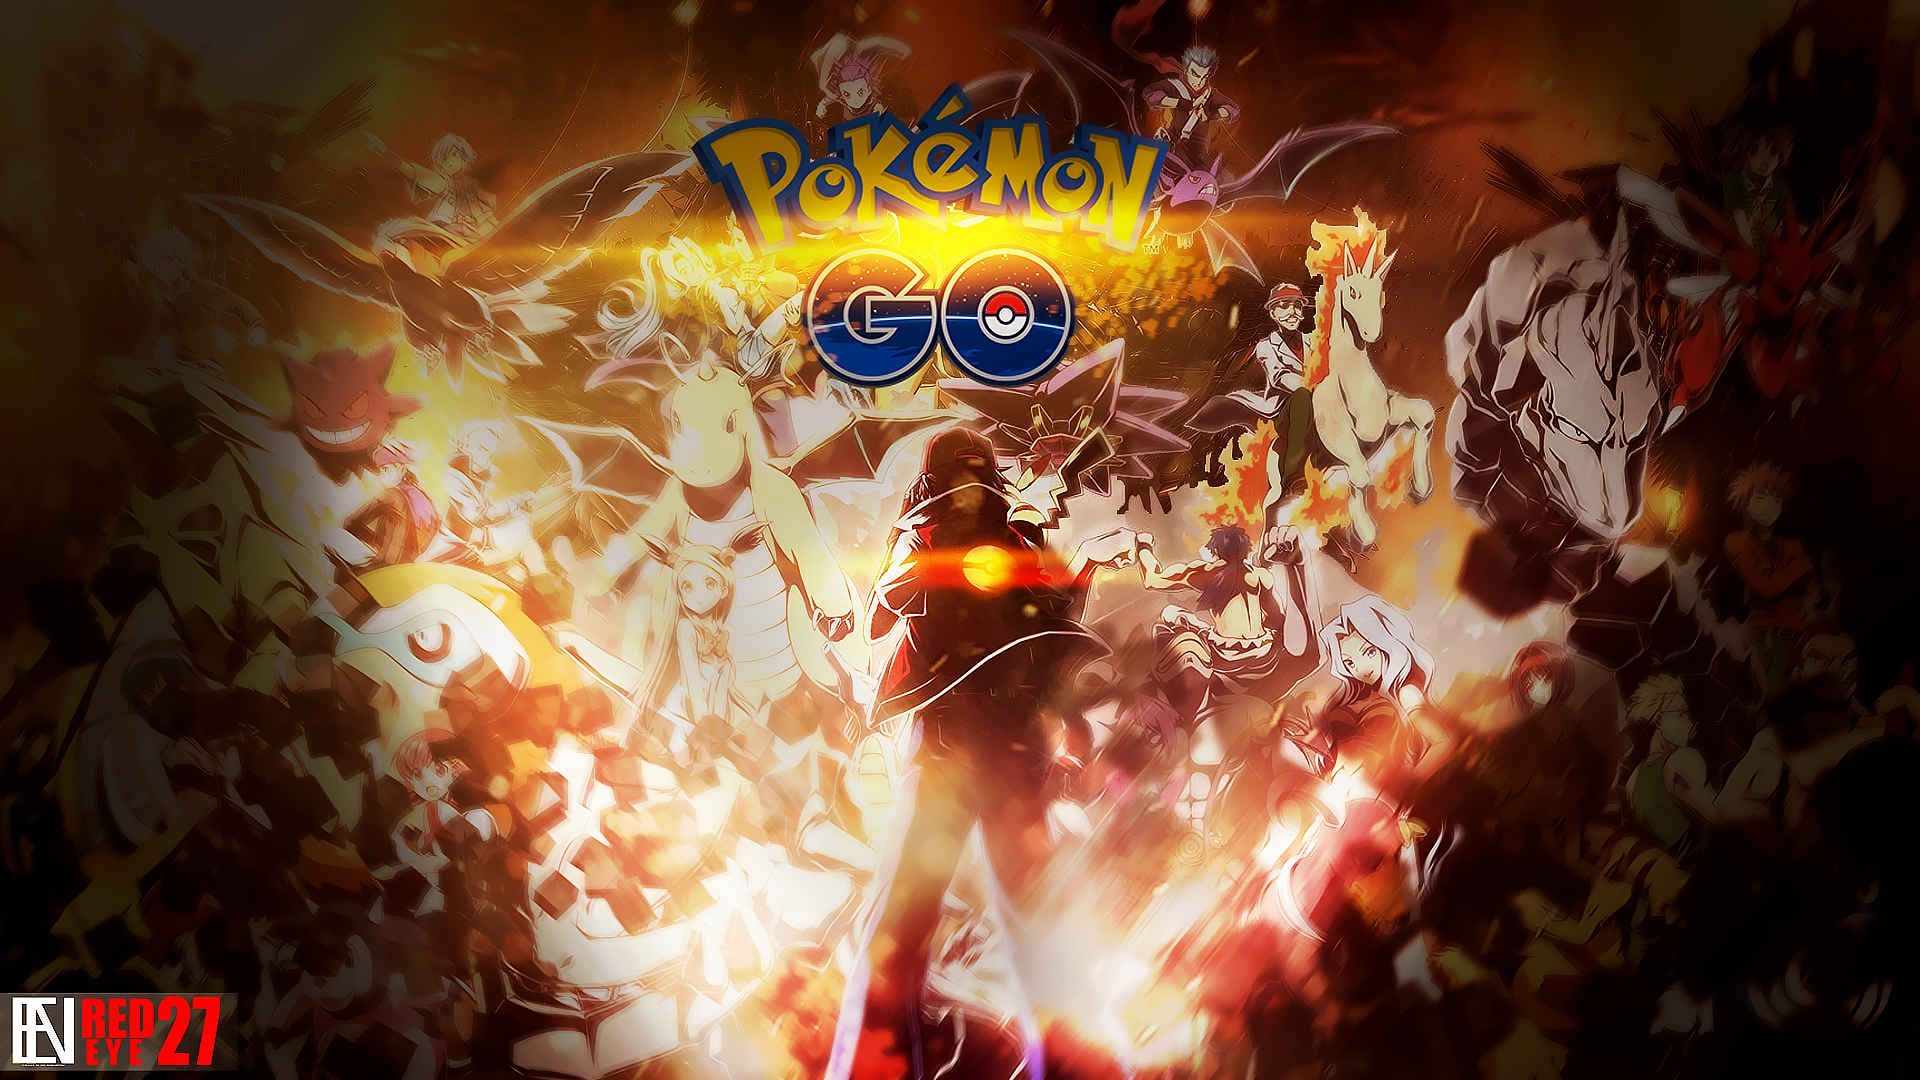 Pokemon GO Backgrounds, Pictures, Images